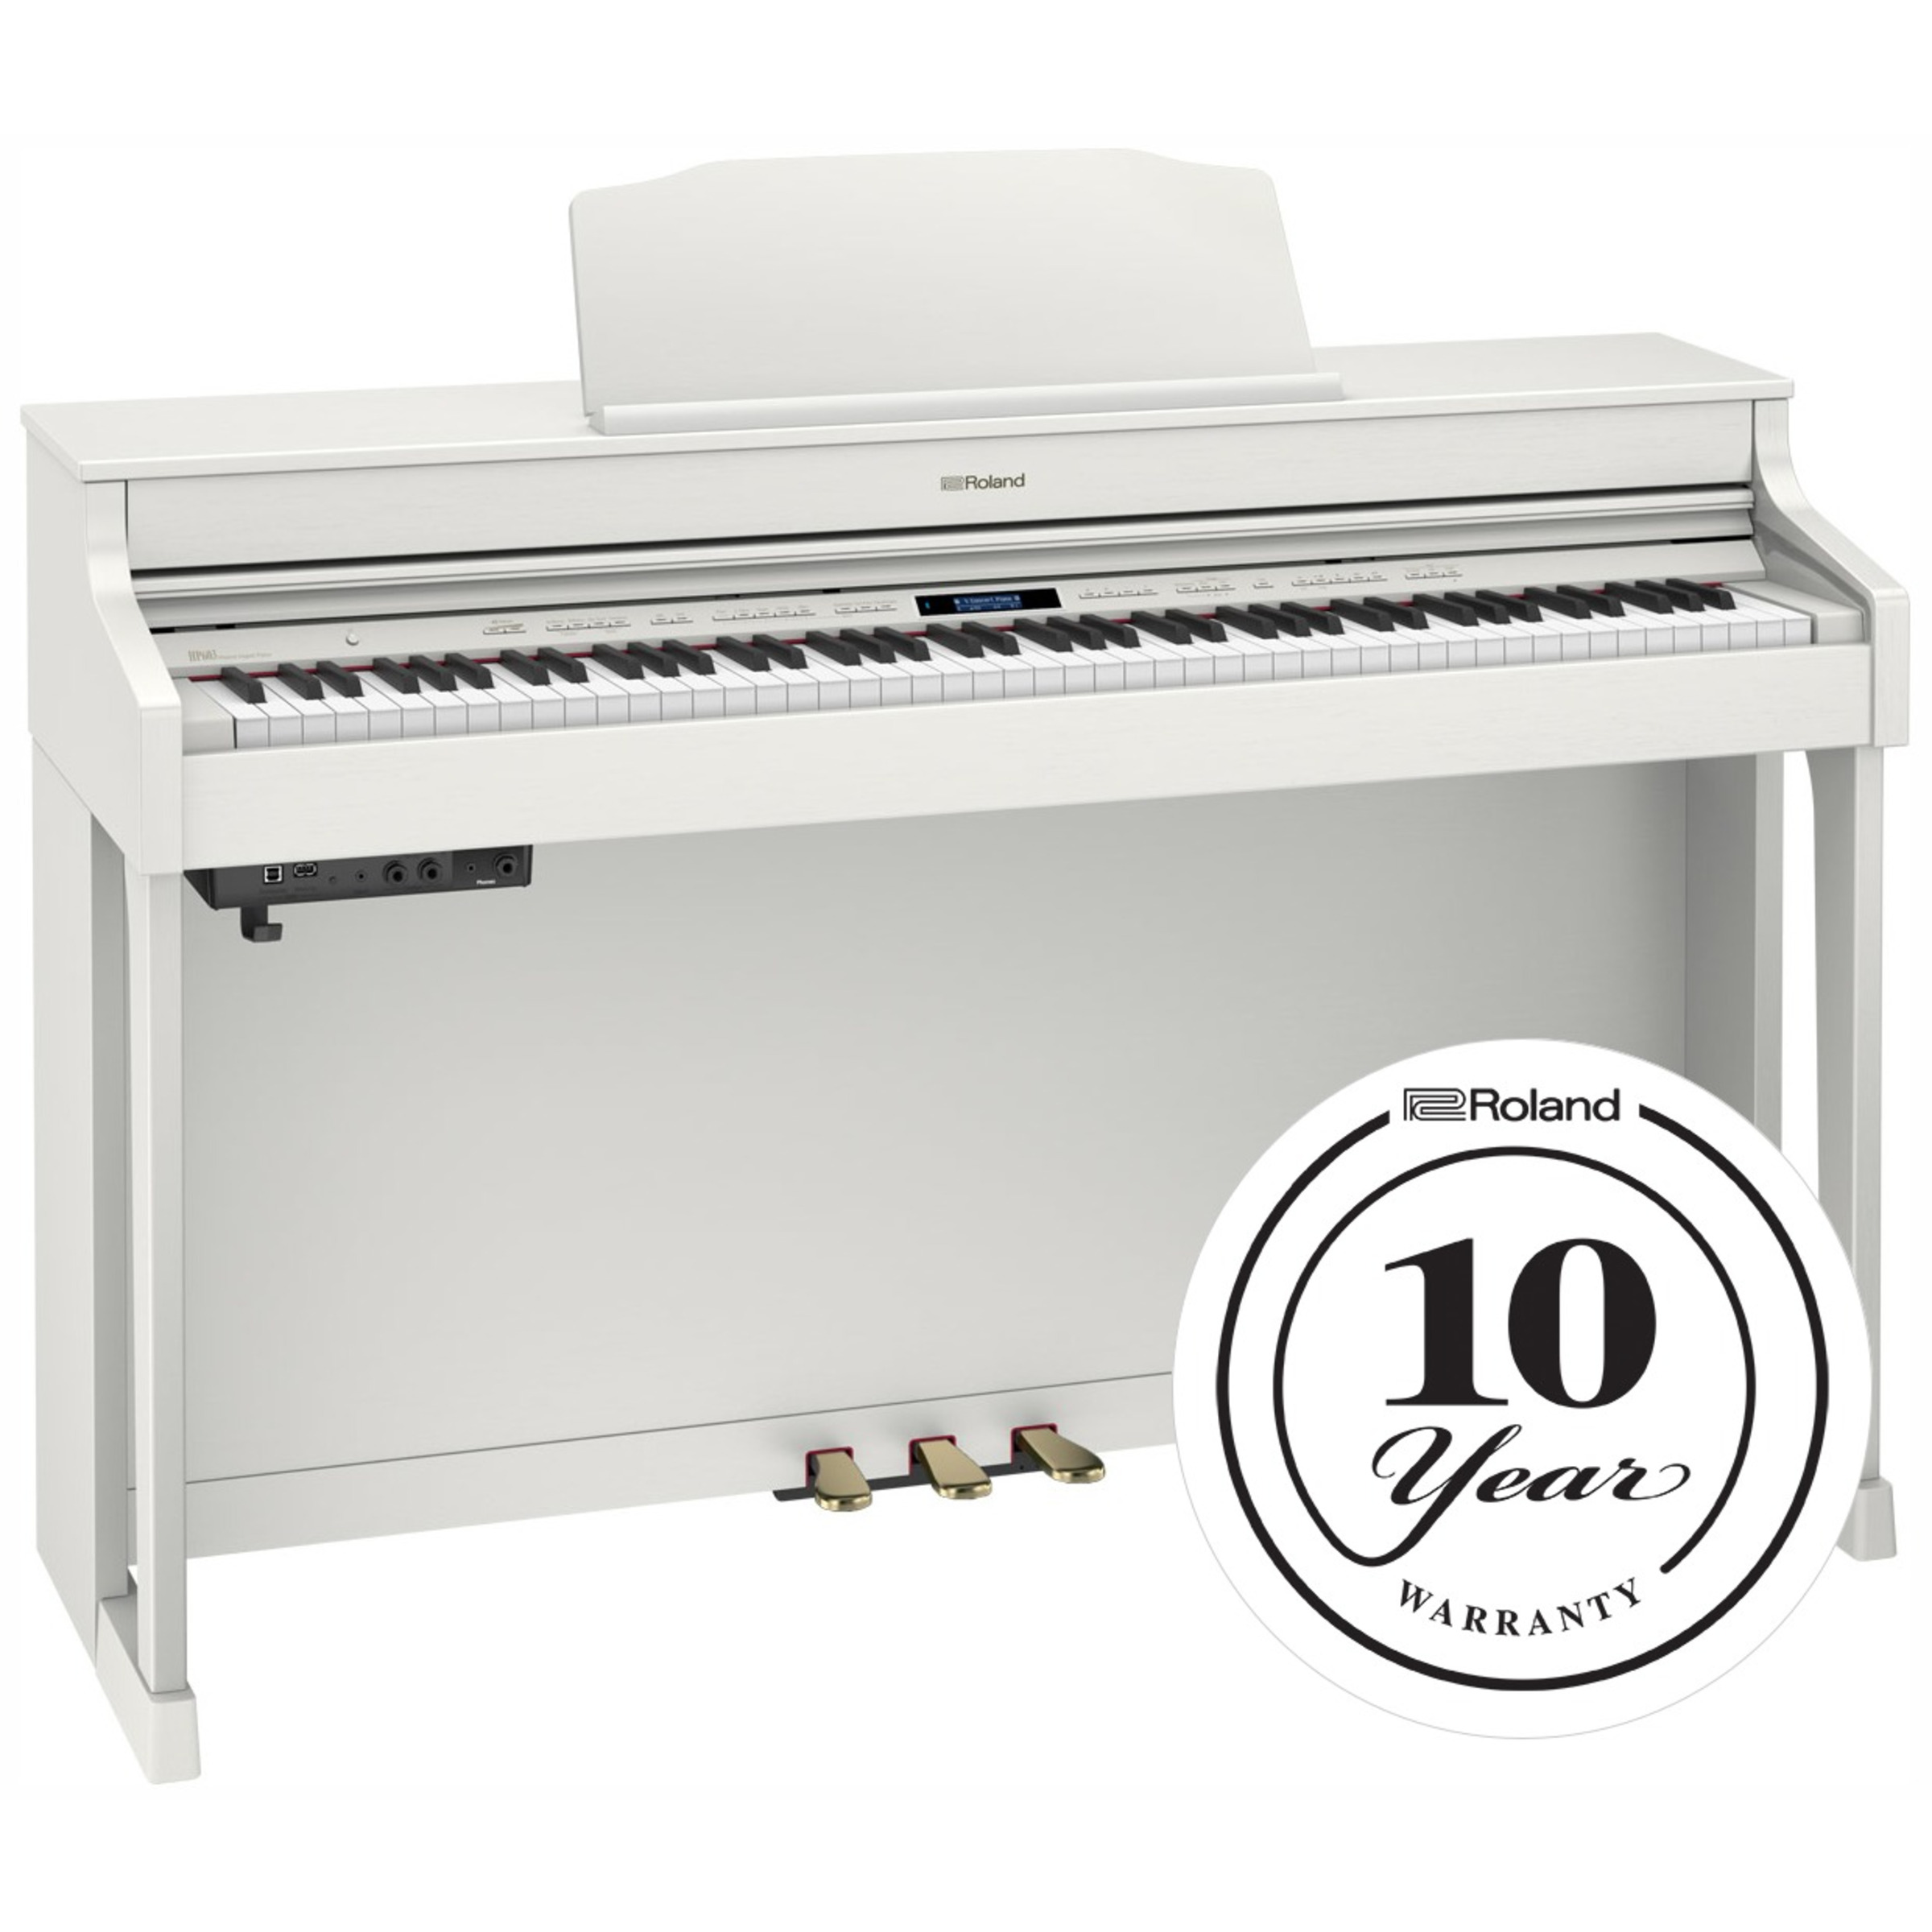 roland hp603a digital piano white display model giggear. Black Bedroom Furniture Sets. Home Design Ideas